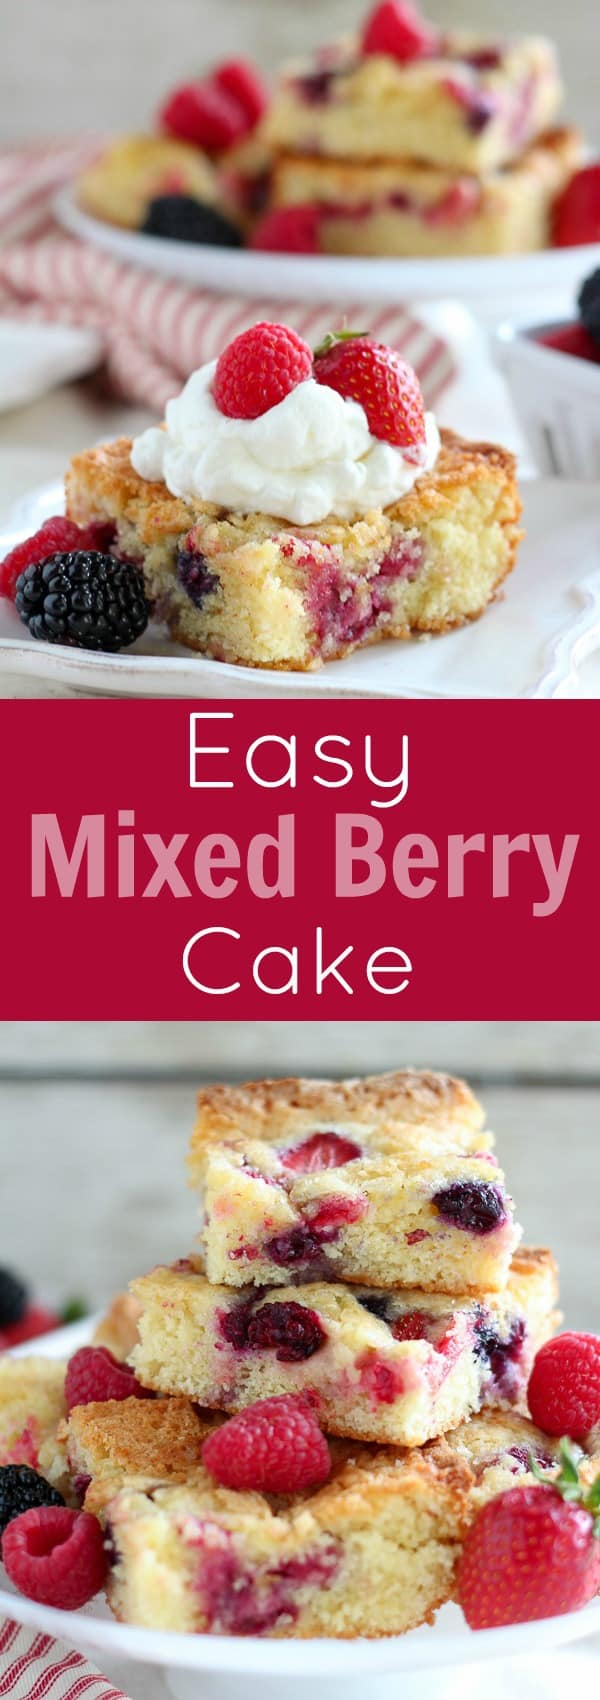 Easy Mixed Berry Cake - A tender vanilla cake flavored with a touch of almond extract and filled with fresh berries. This will be your go-to summer dessert!